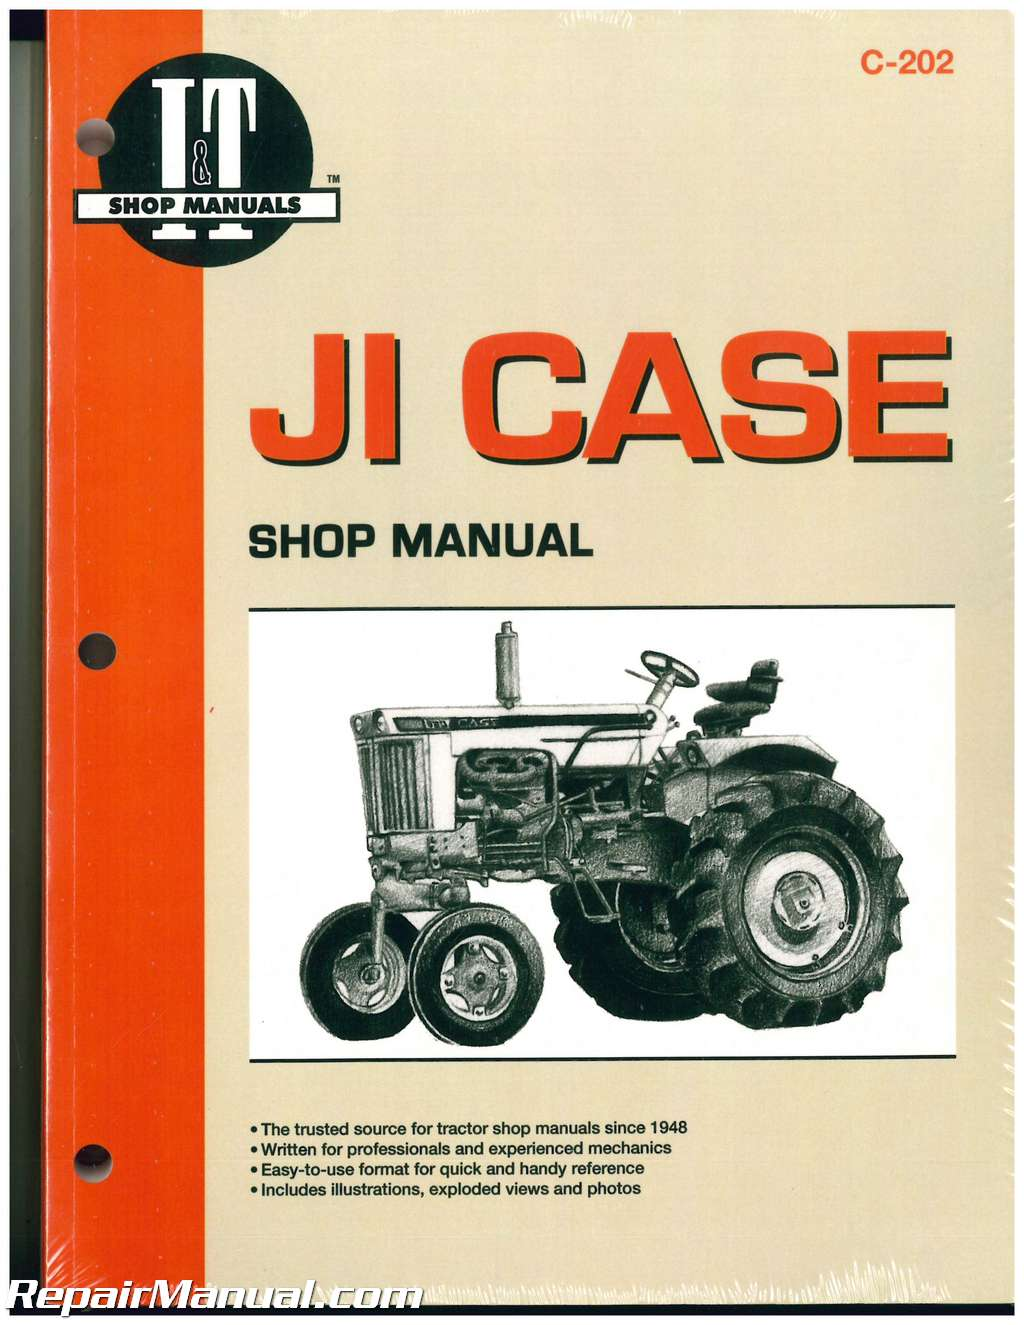 Case 730 Wiring Diagram Library 446 Tractor Ji David Brown Repair Manual 430 440 470 500 530 540 570 600